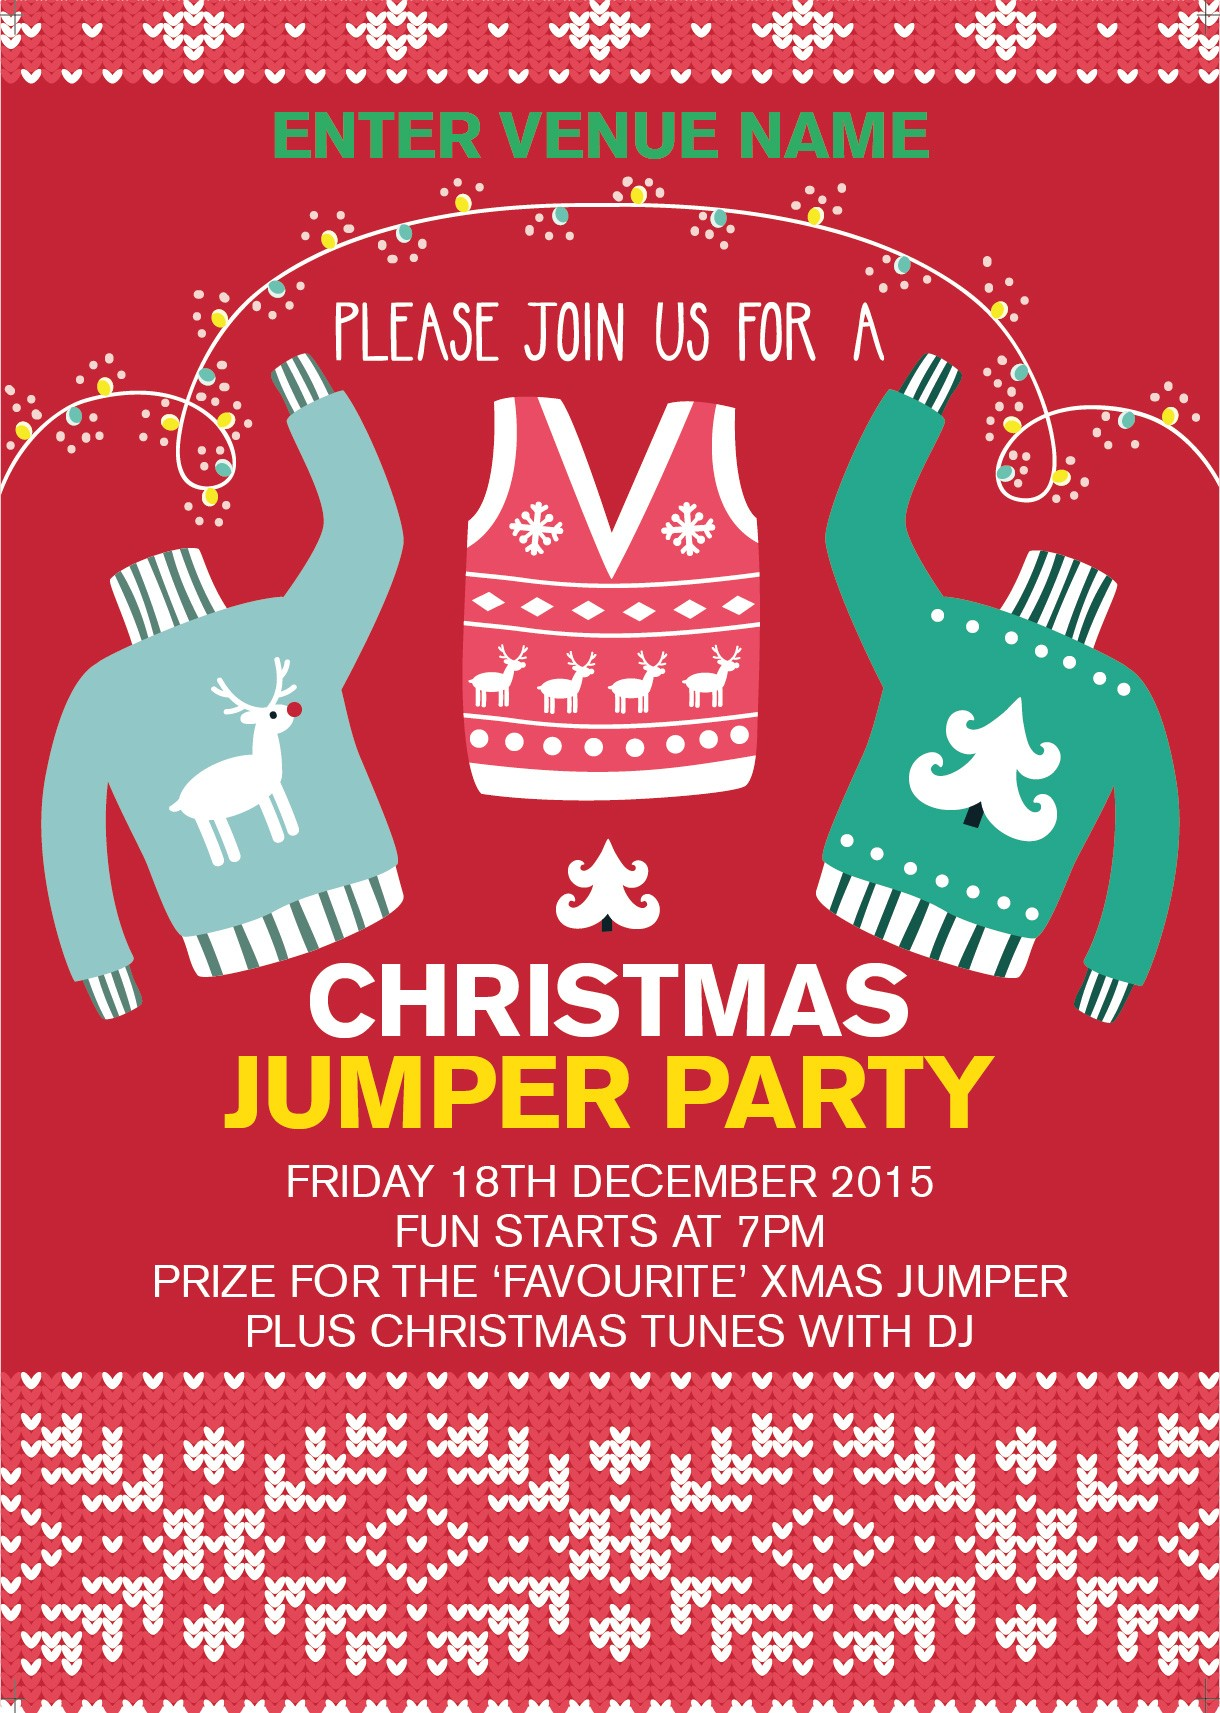 Christmas Jumper Party Poster | Promote Your Pub